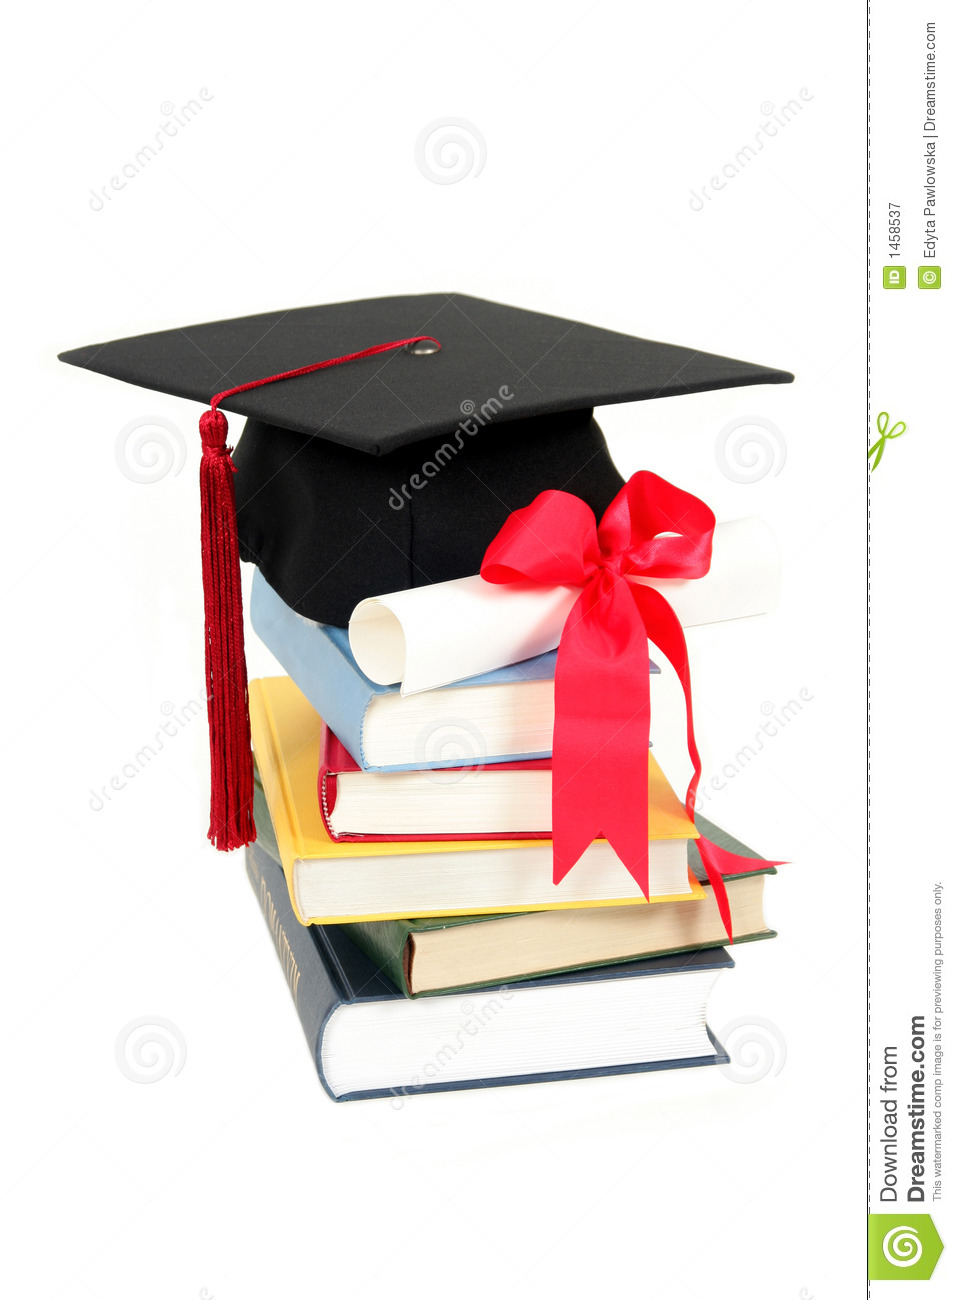 graduation cap and diploma on stack of books stock photo 1458537 megapixl